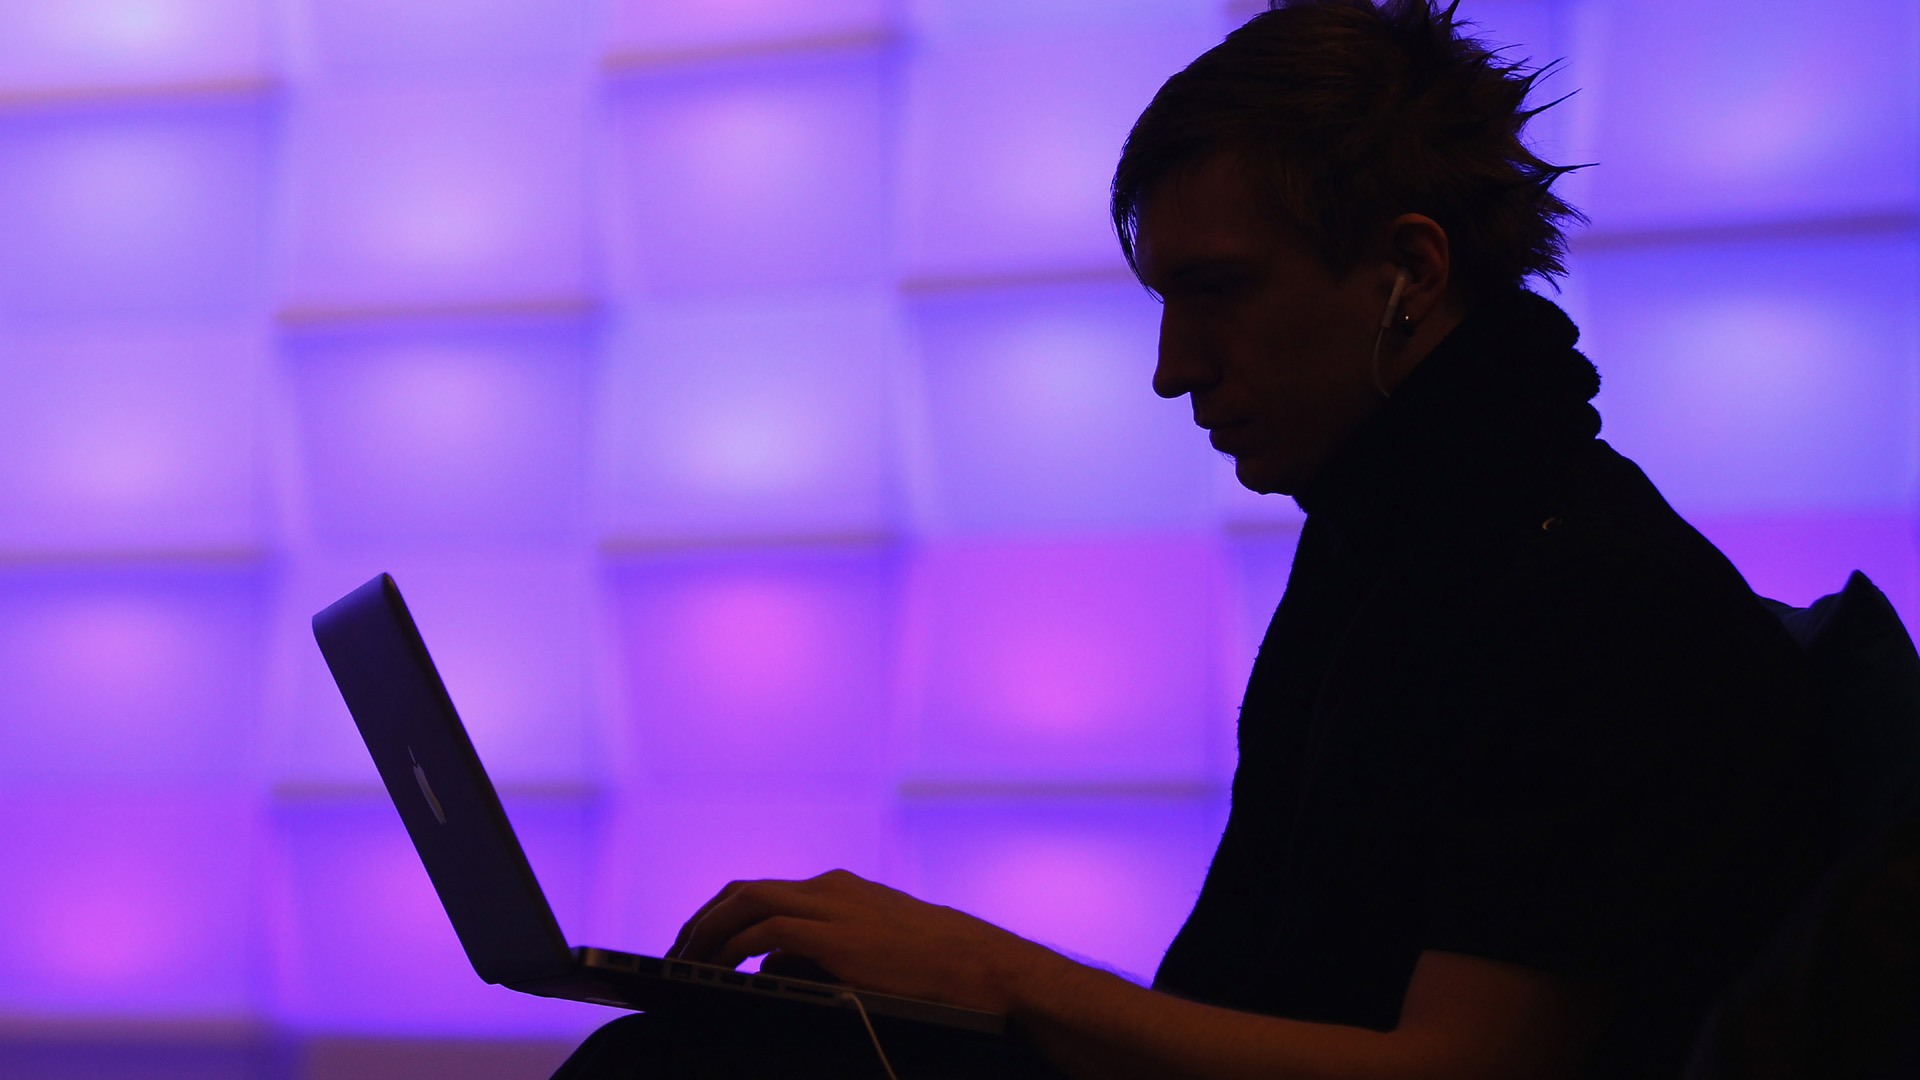 cybersecurity laptop person purple background33897342-159532